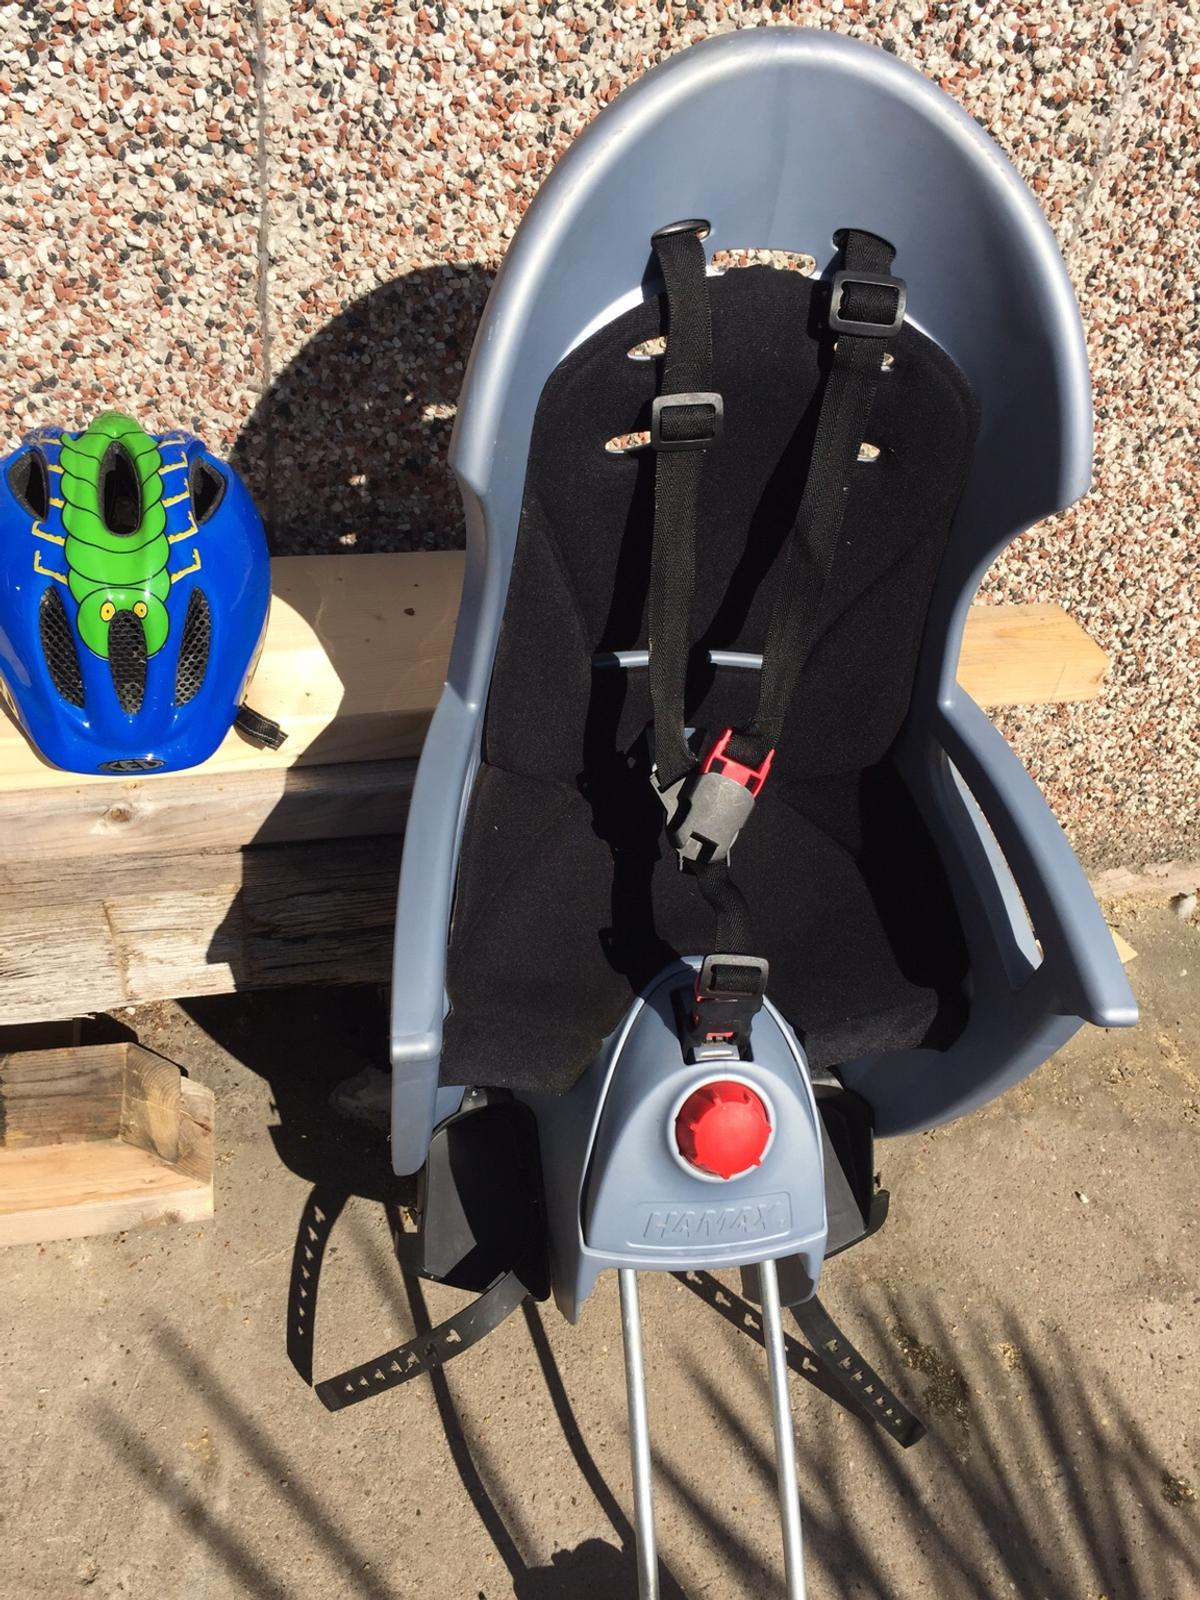 incredible prices great fit where can i buy Hamax siesta children's bike seat and helmet